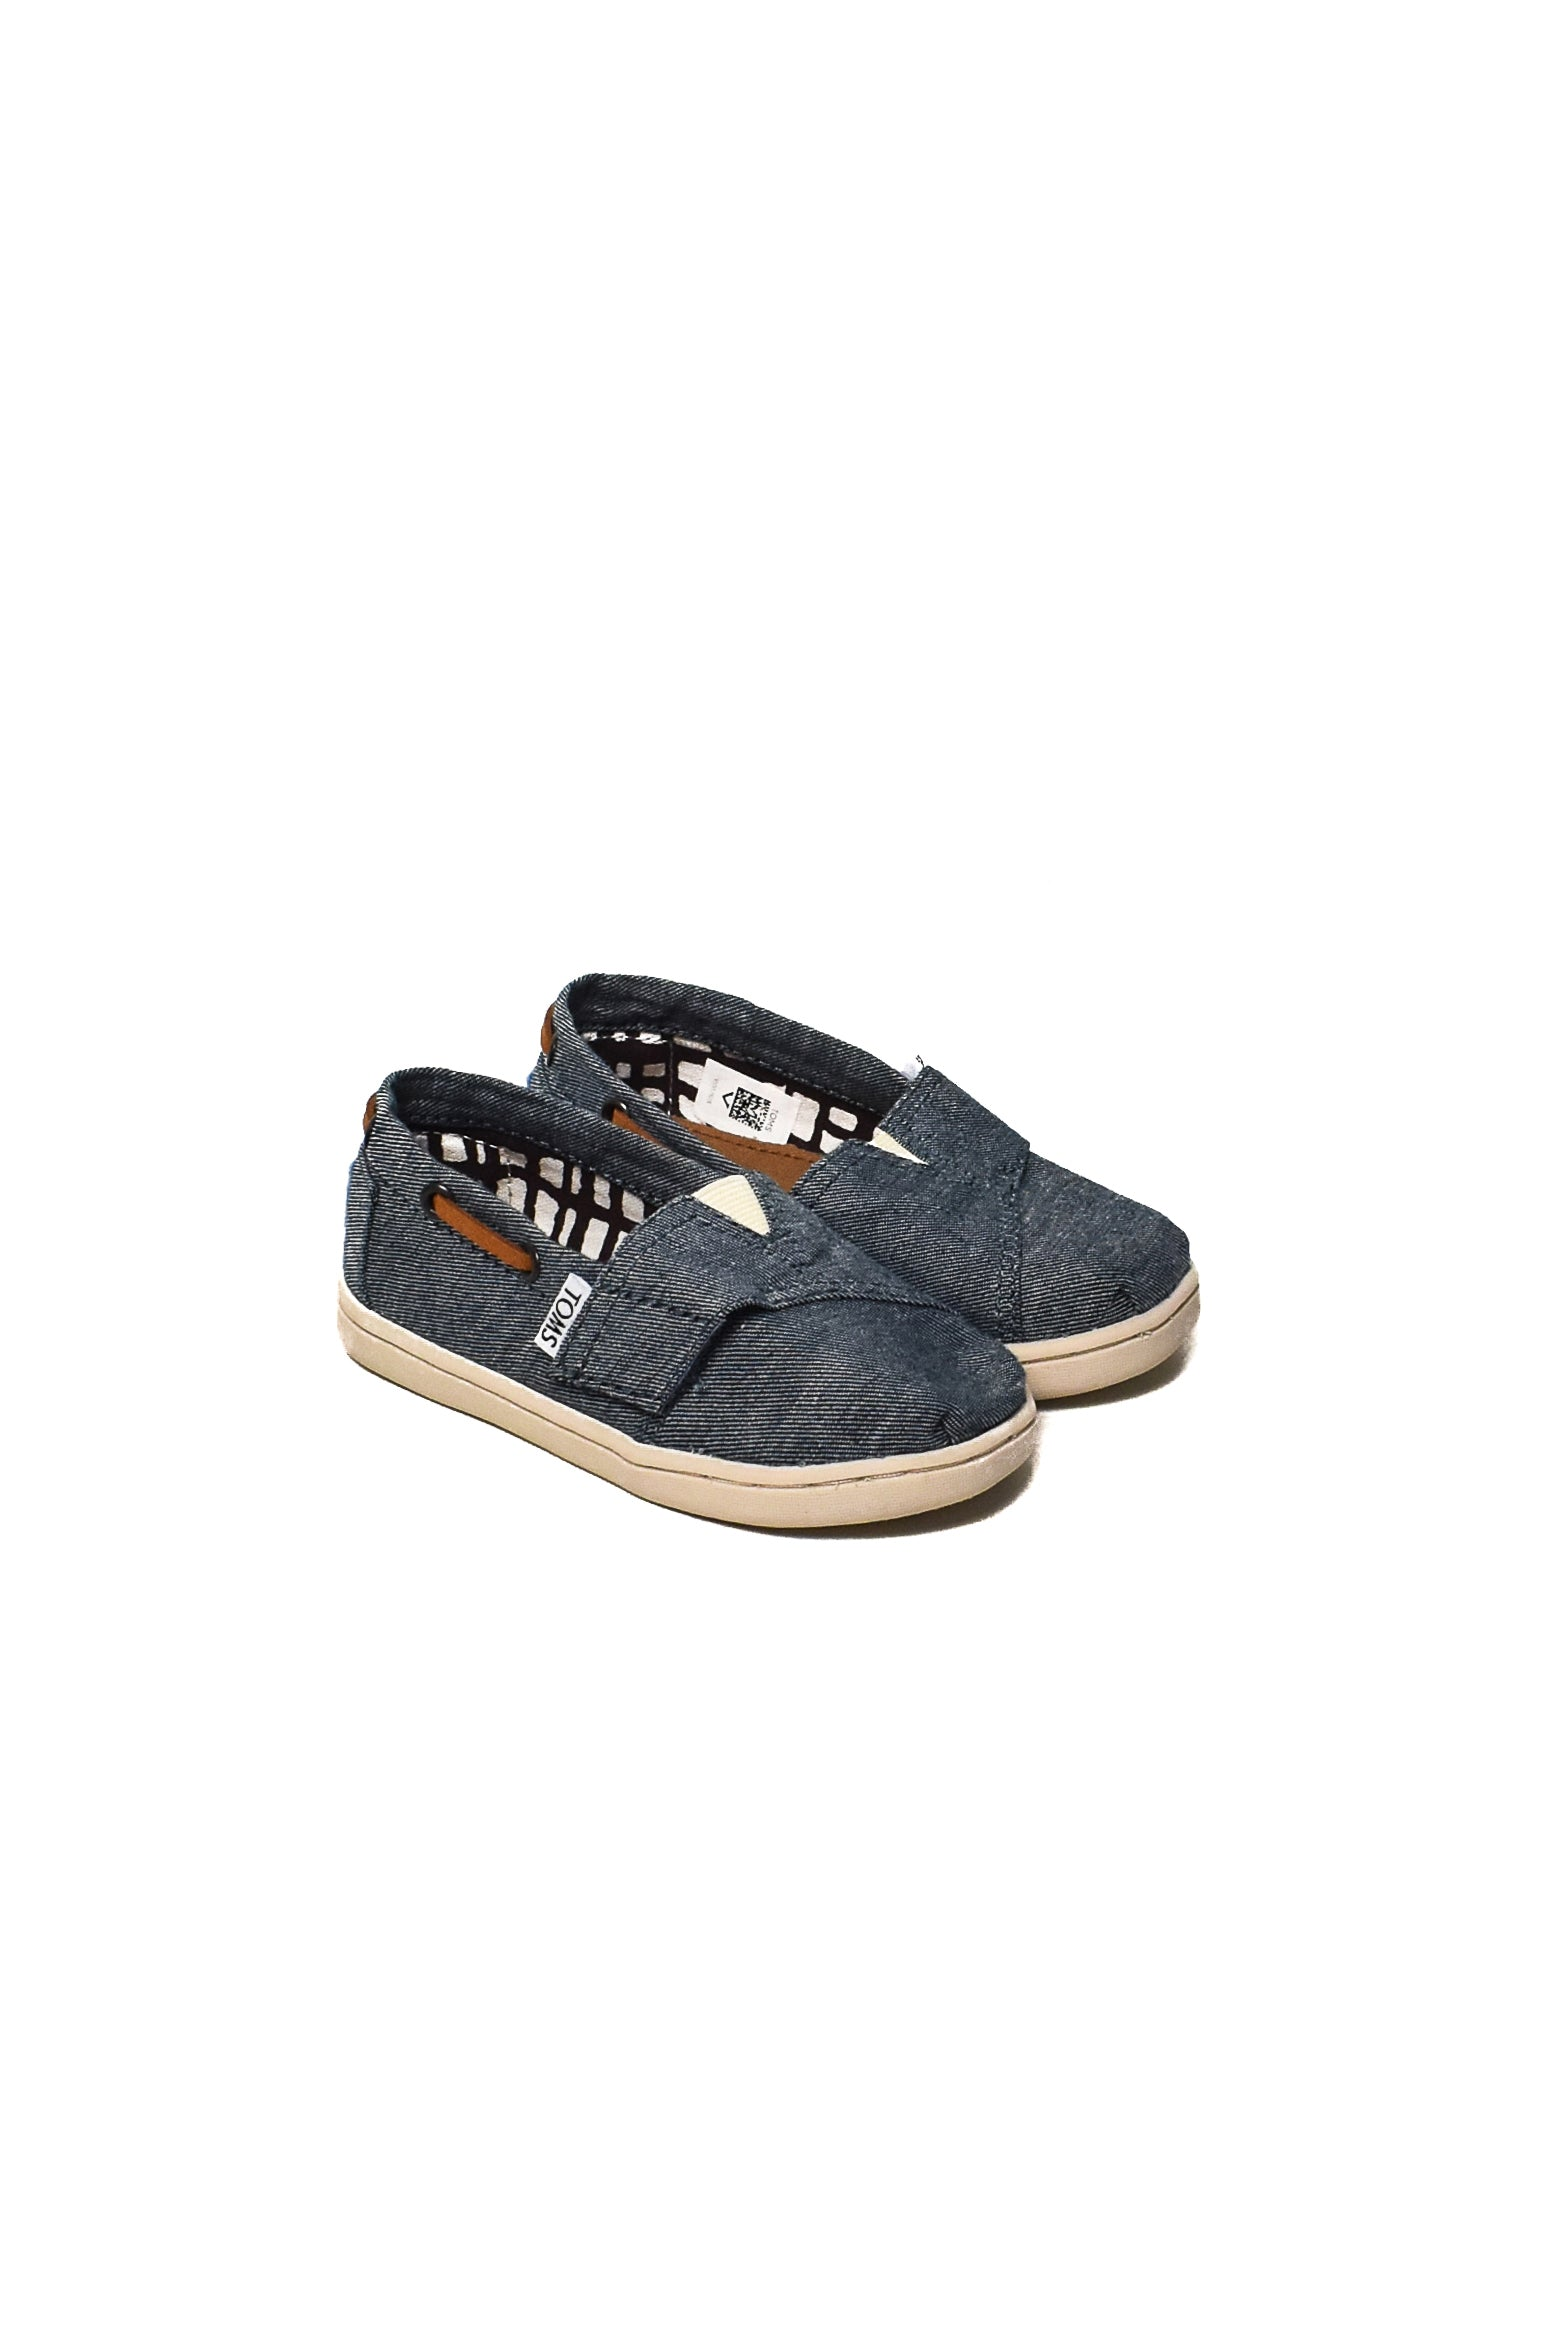 ba89d66acdc 10006965 Toms Baby~ Shoes EU 21 at Retykle